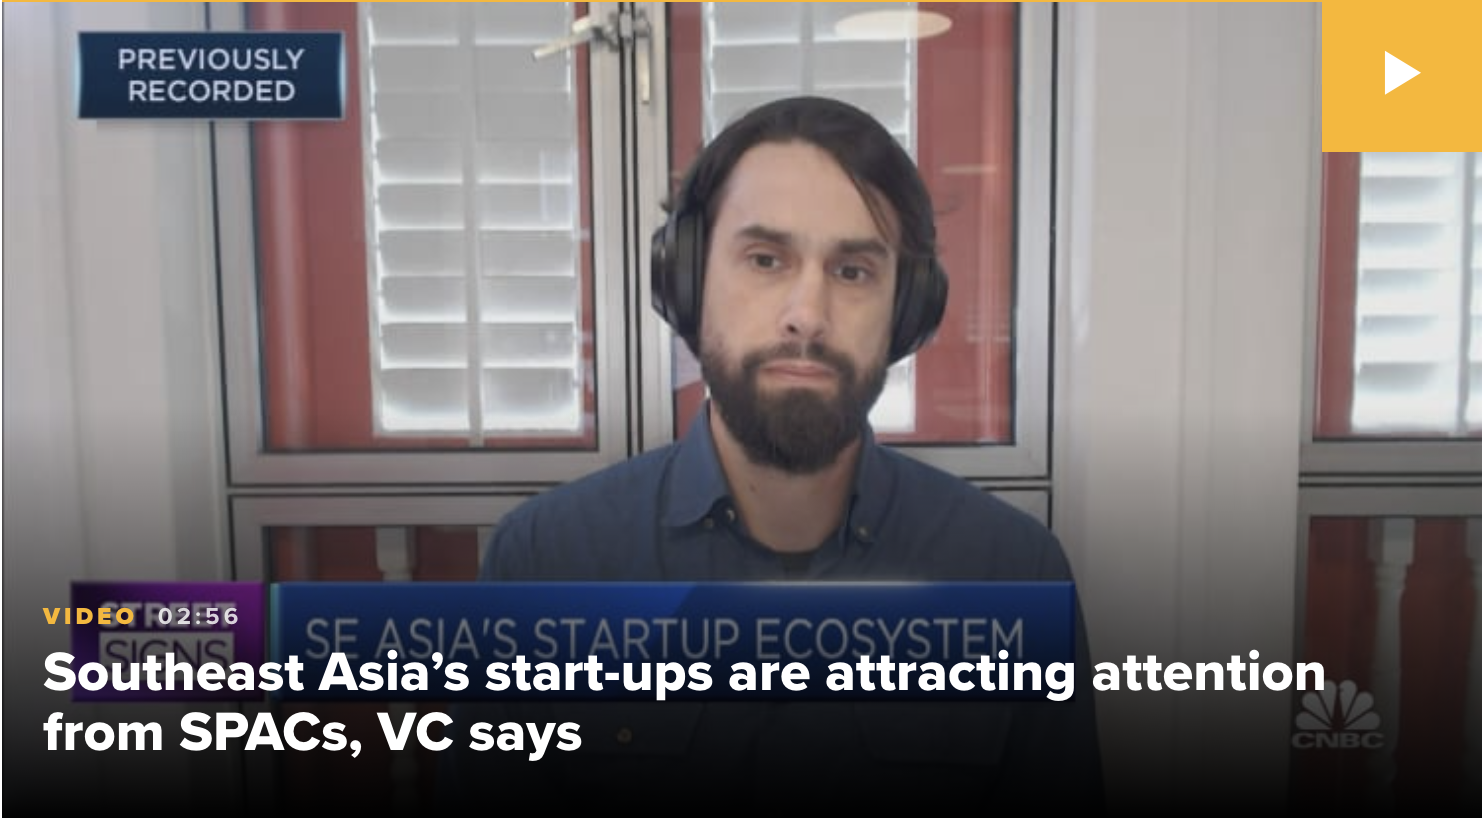 Southeast Asia start-ups are attracting the attention of blank check companies: Golden Gate Ventures